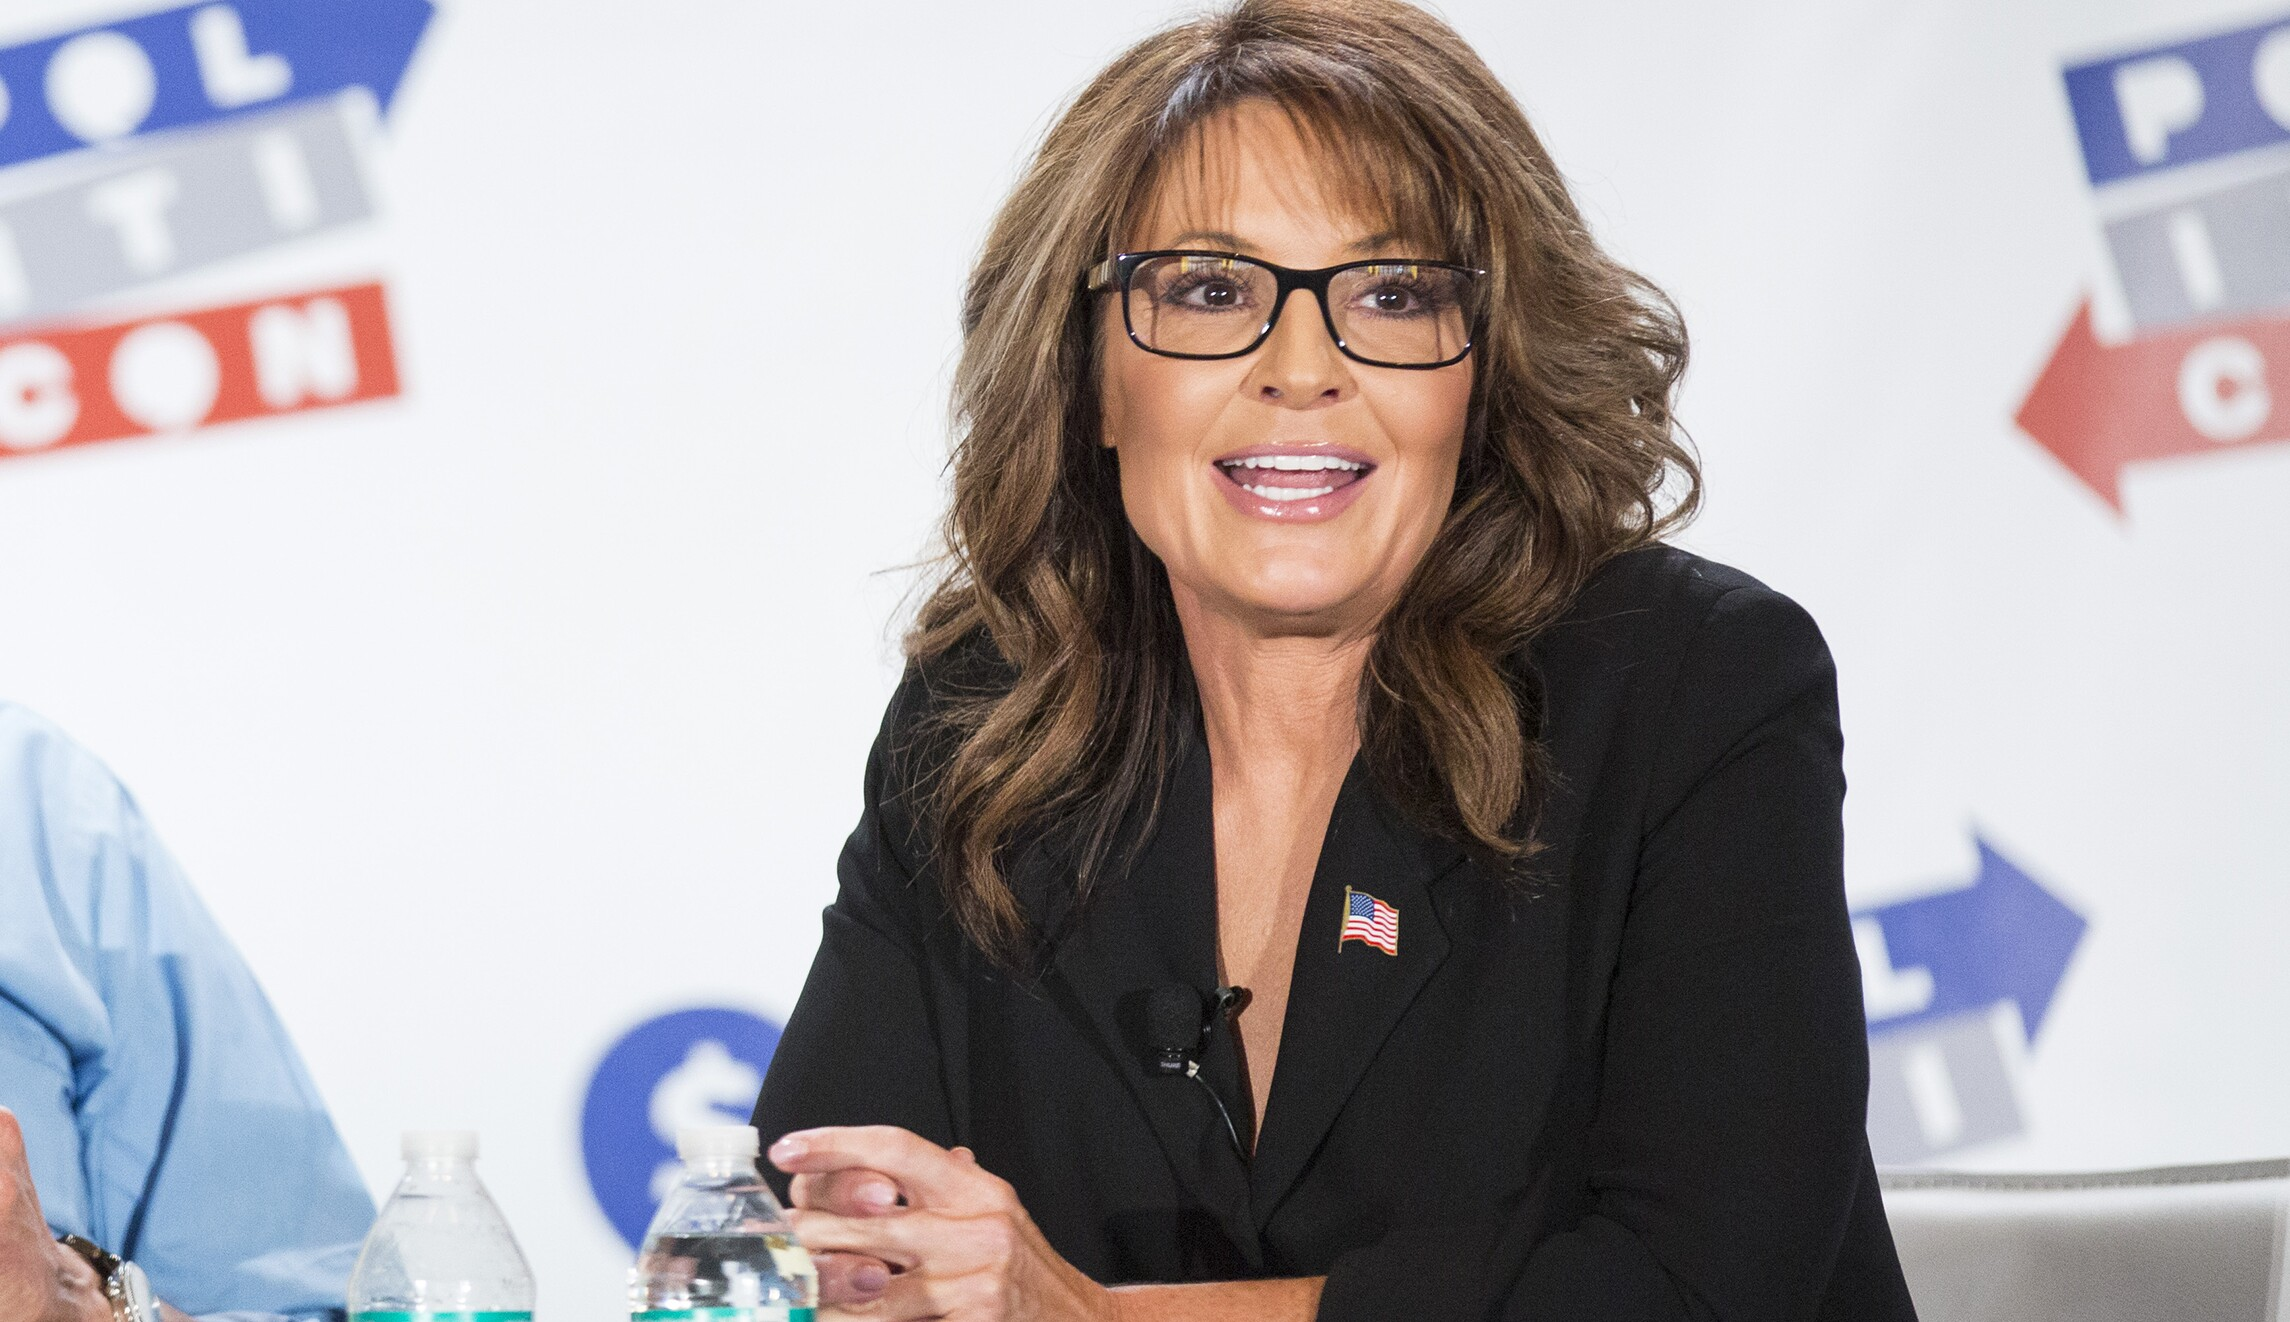 Sarah palin will probably lose her libel lawsuit against the new sarah palin will probably lose her libel lawsuit against the new york times but shes already got a pr win thecheapjerseys Choice Image